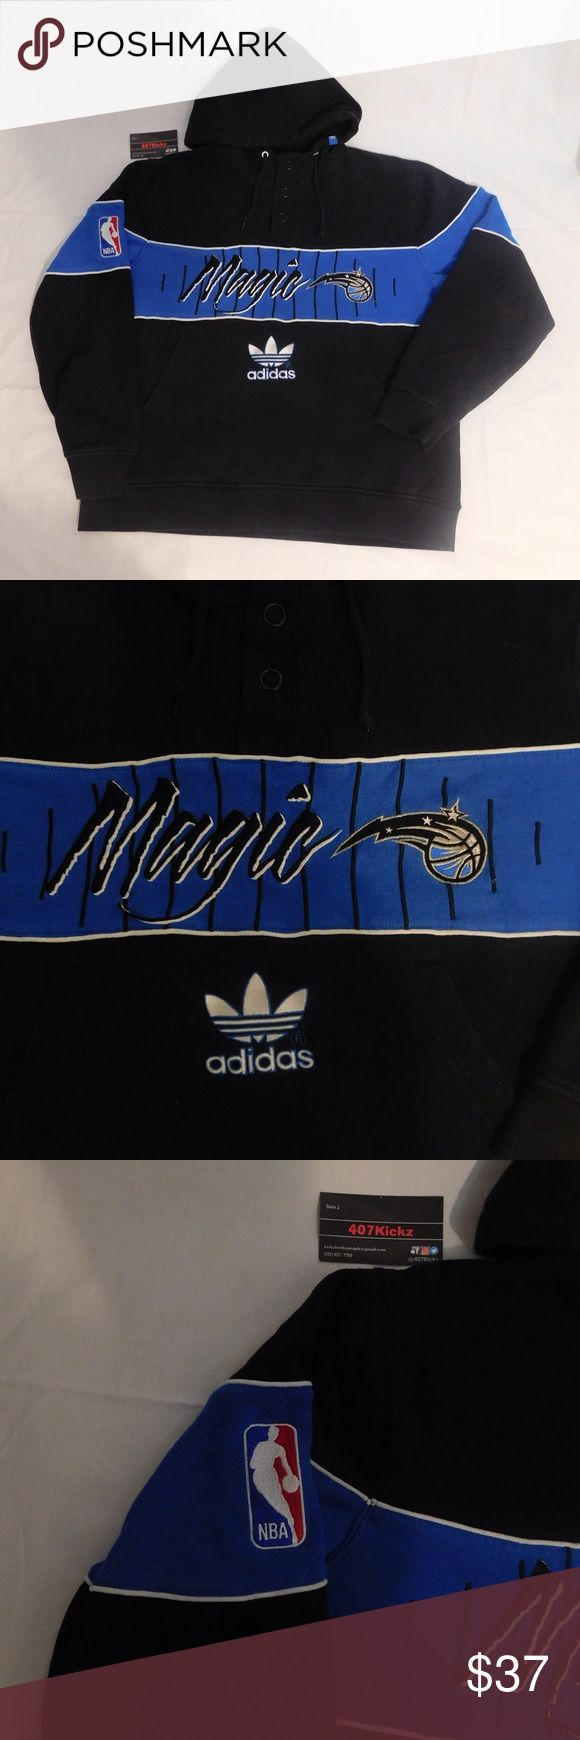 Vintage Magic Hoodie USED Vintage Adidas NBA Orlando Magic Black Blue Hooded Sweatshirt | MENS Size Large | Good condition, minor fading --------------------------------------------------   For Discounts Follow Me on Instagram @407vintage !    TAGS:  , stussy ,  , retro jordan , steal , foams , foamposite , rare , nike air , yeezy boost 350 750 v2 , concord , raging bulls , sade tee , space jam , sbb shattered backboard , don c , special force , limited , OVO , powerphase , calabasas , obama…